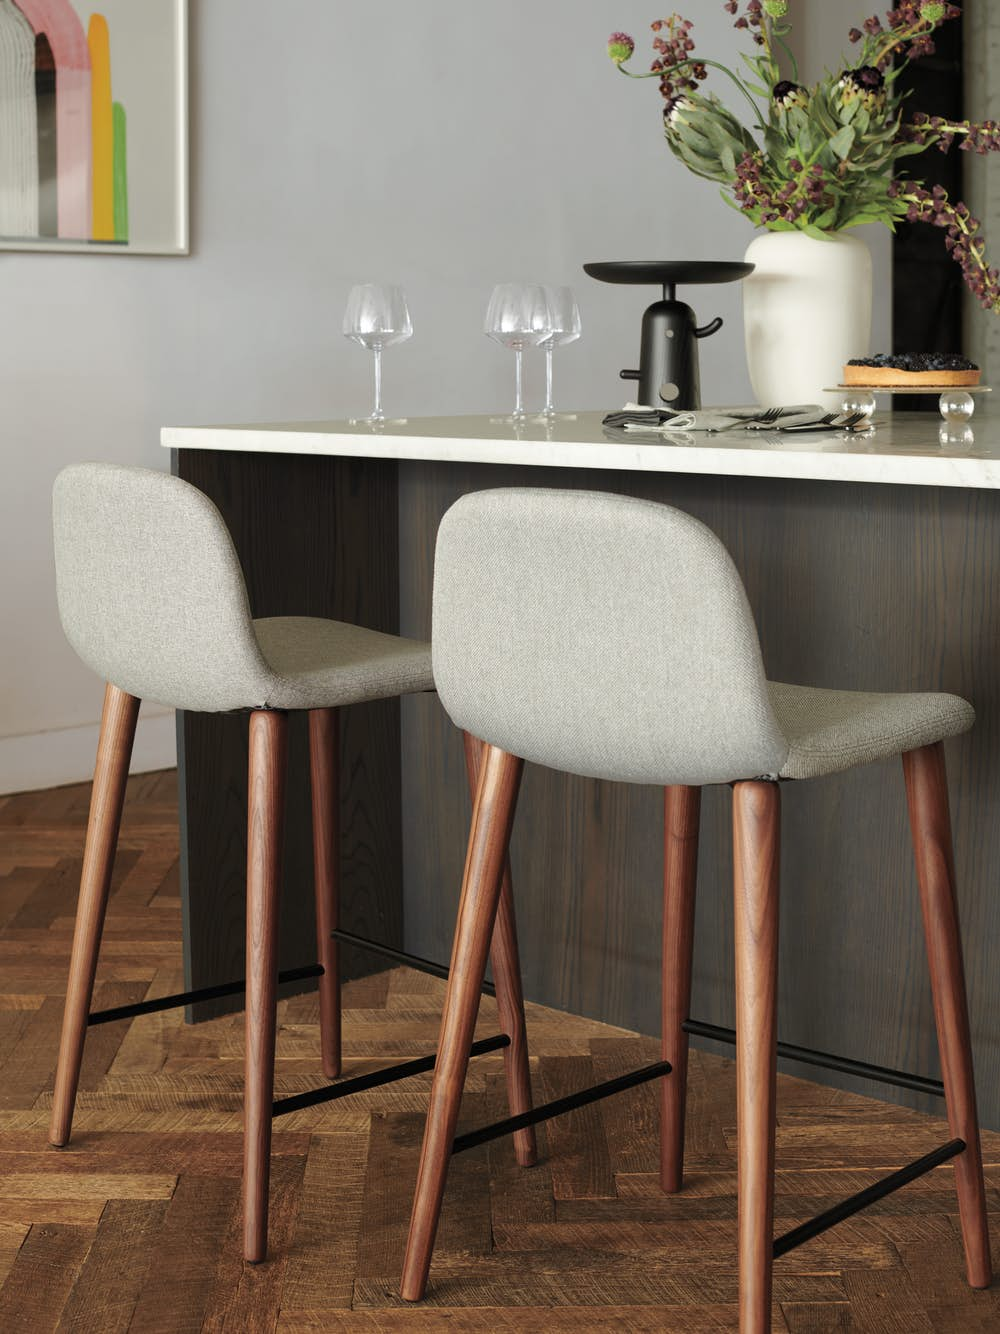 Bacco Counter Stool in Duet in kitchen